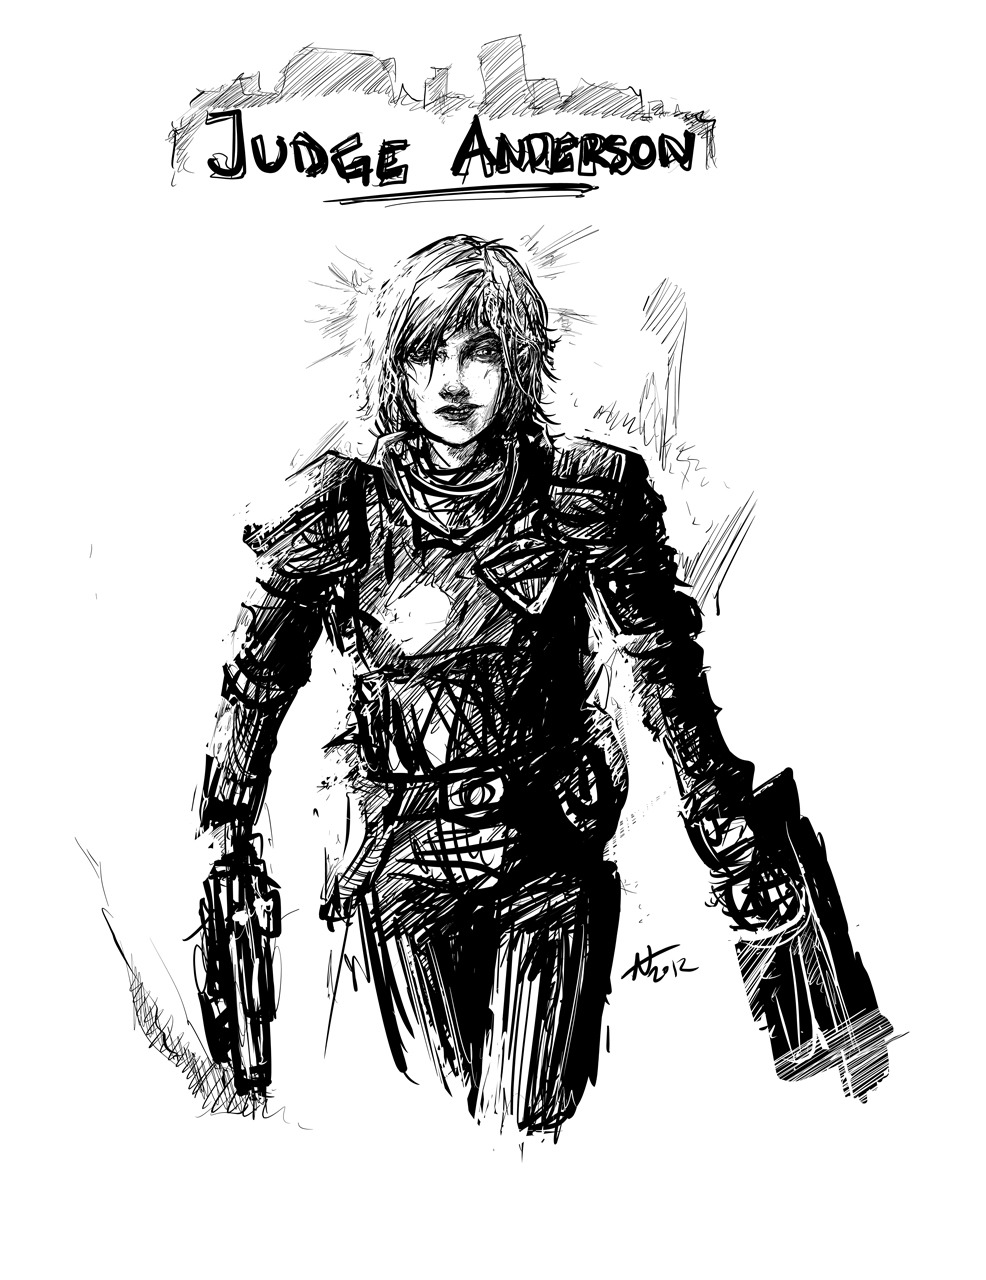 After seeing Dredd: Judge Anderson.